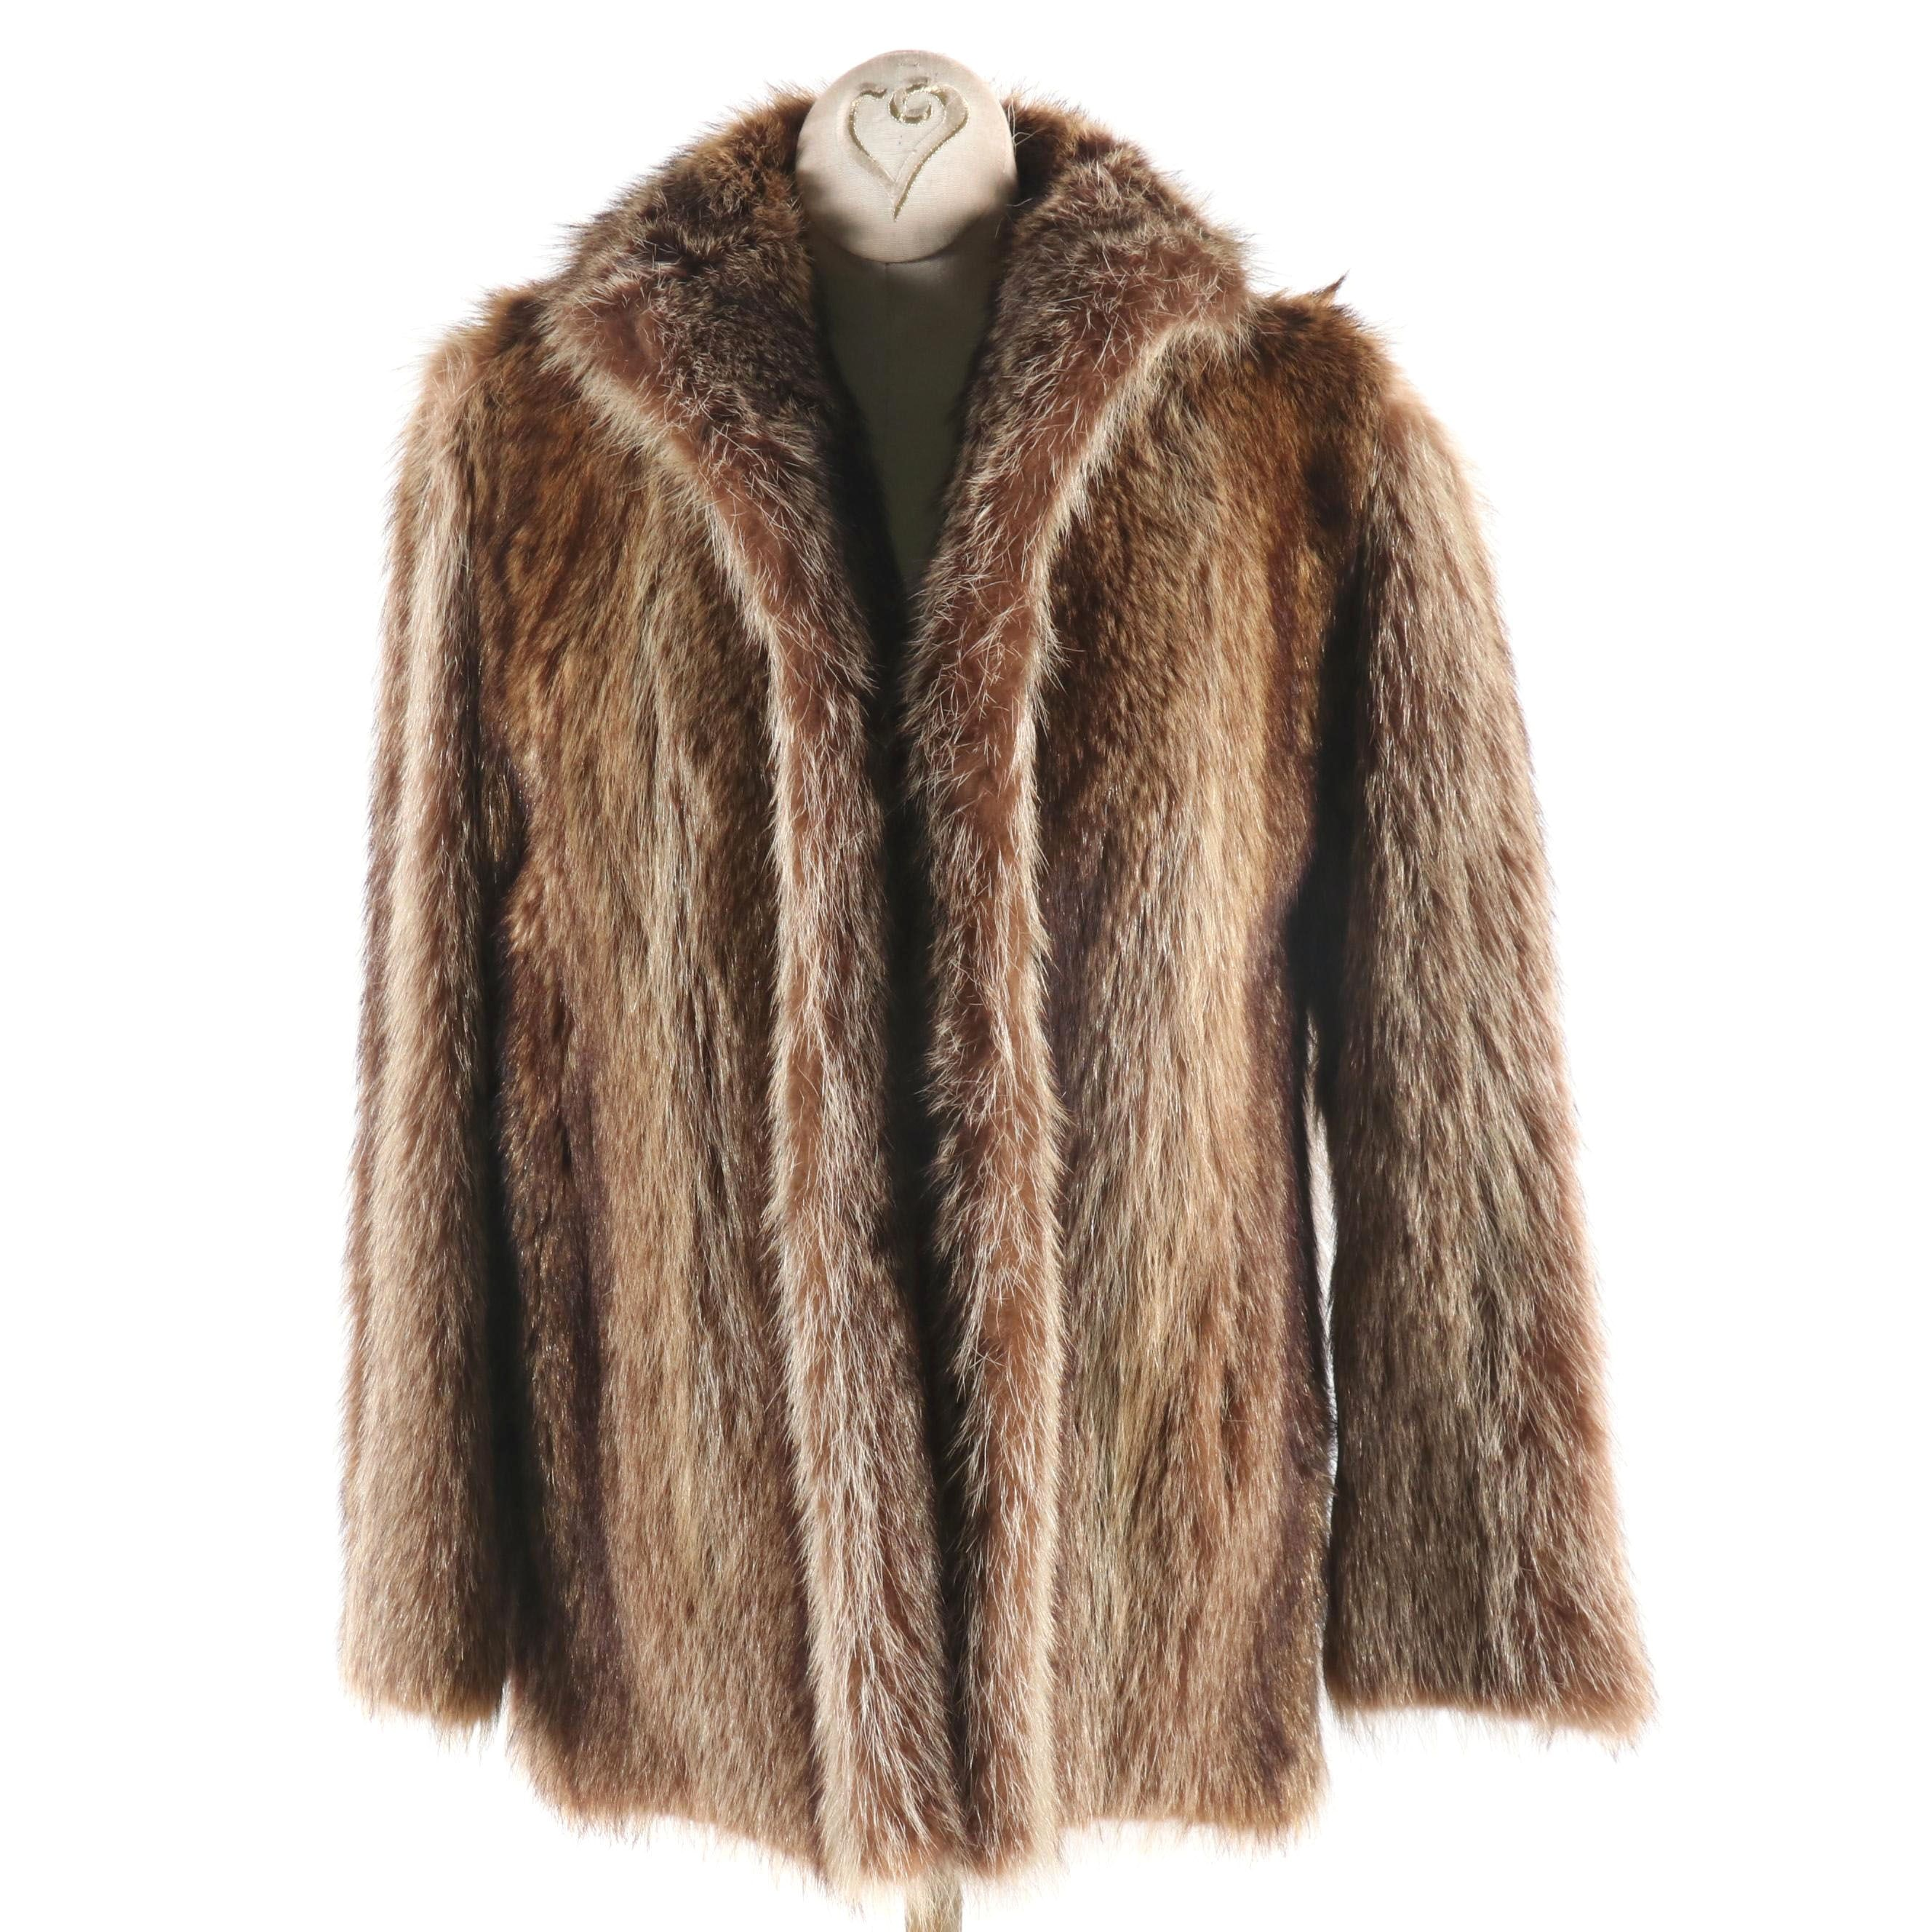 Women's Raccoon Fur Jacket